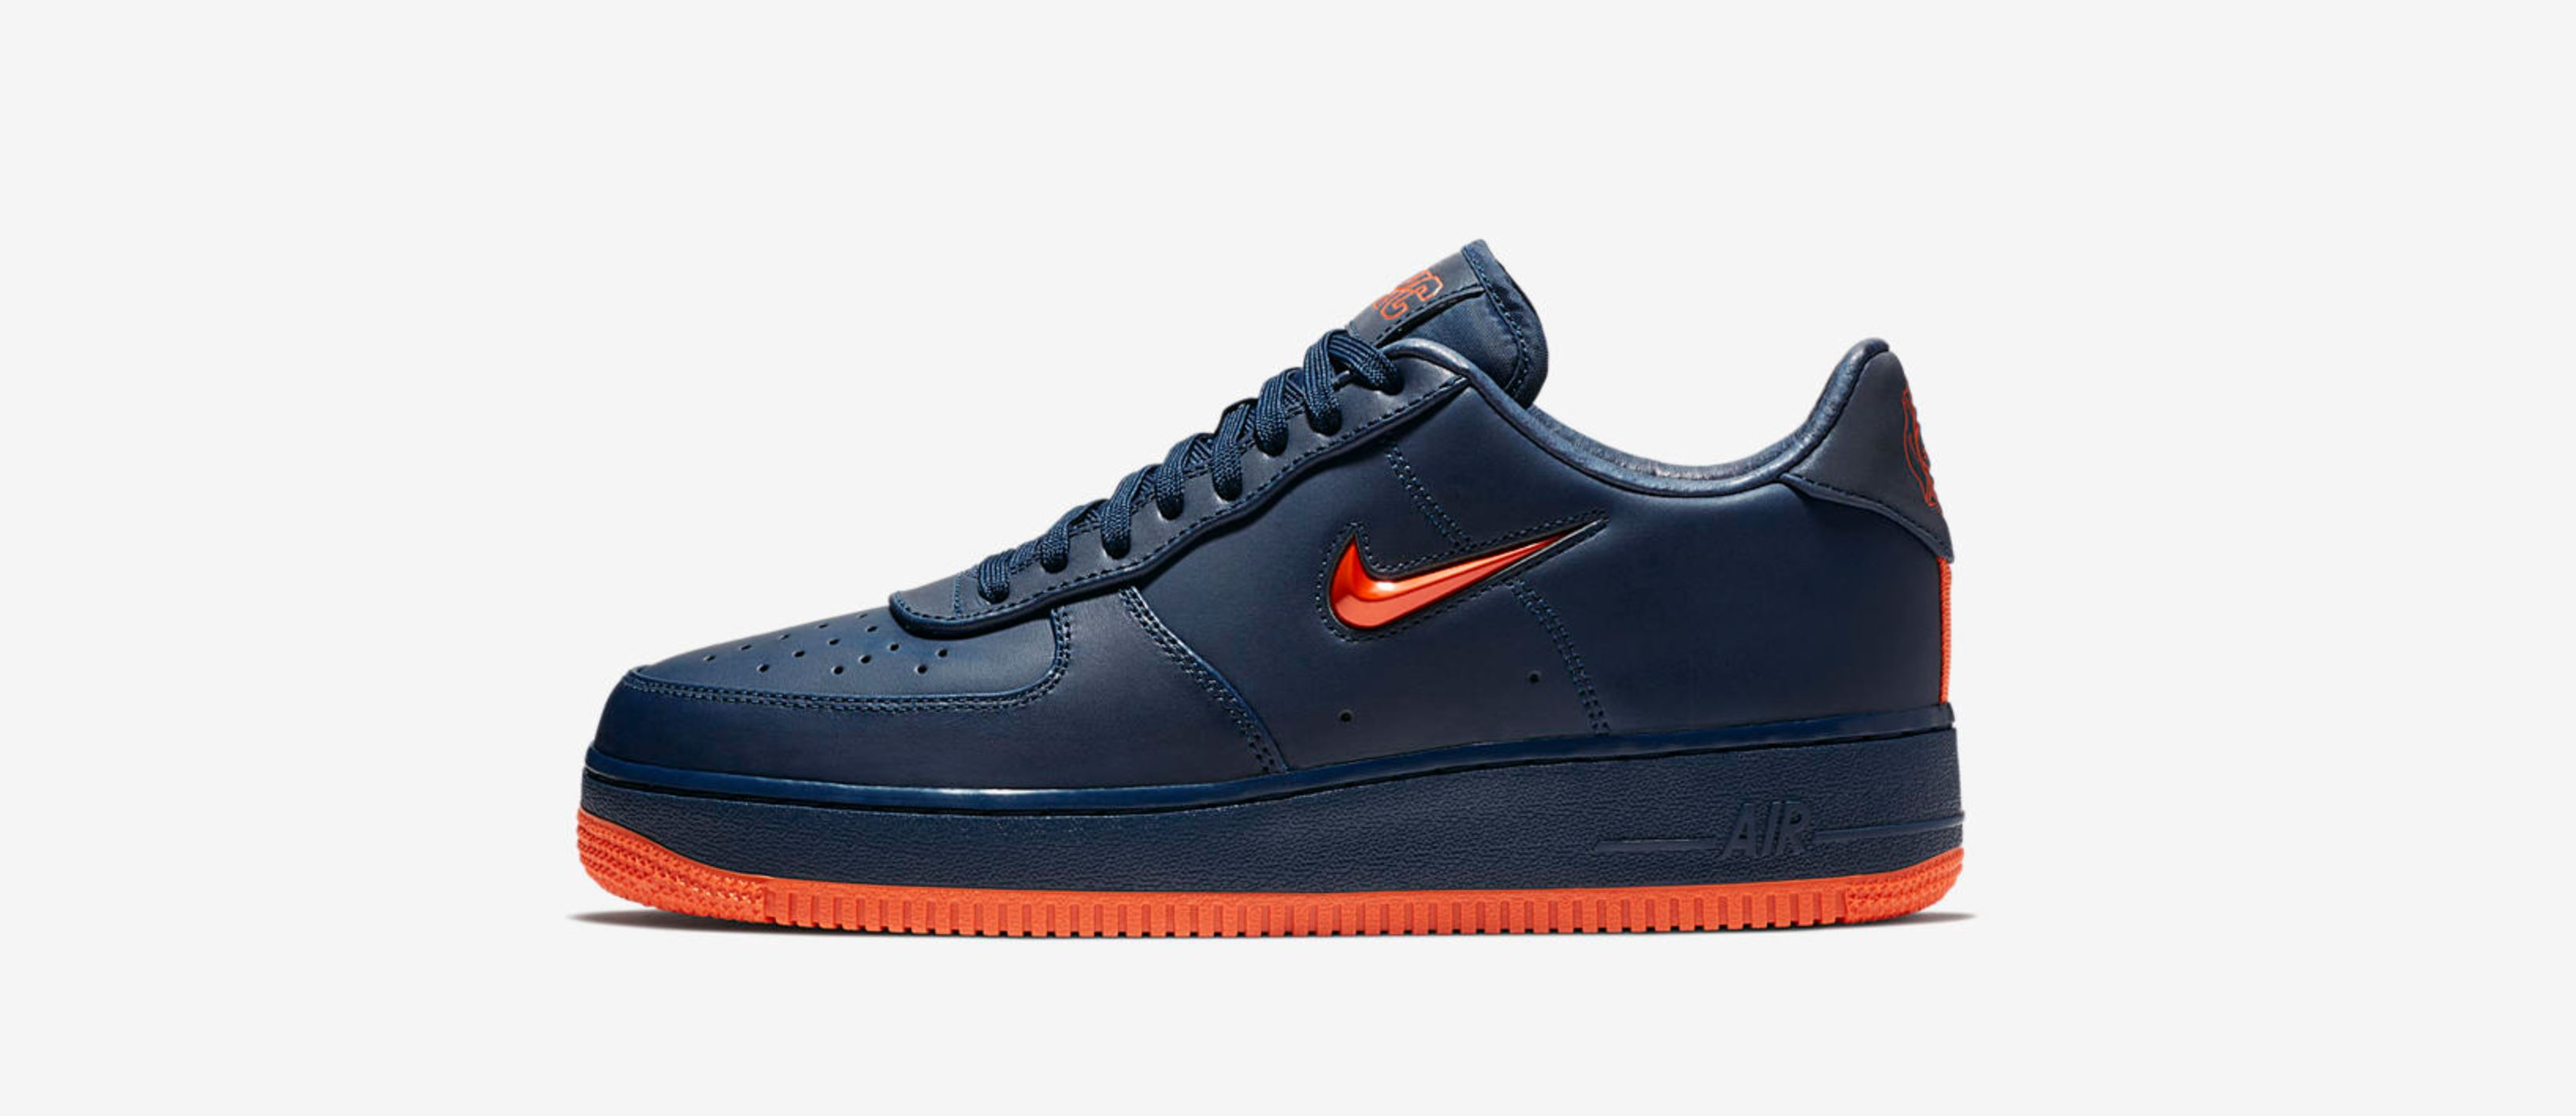 667f9296a259 nike air force 1 low NYC - WearTesters